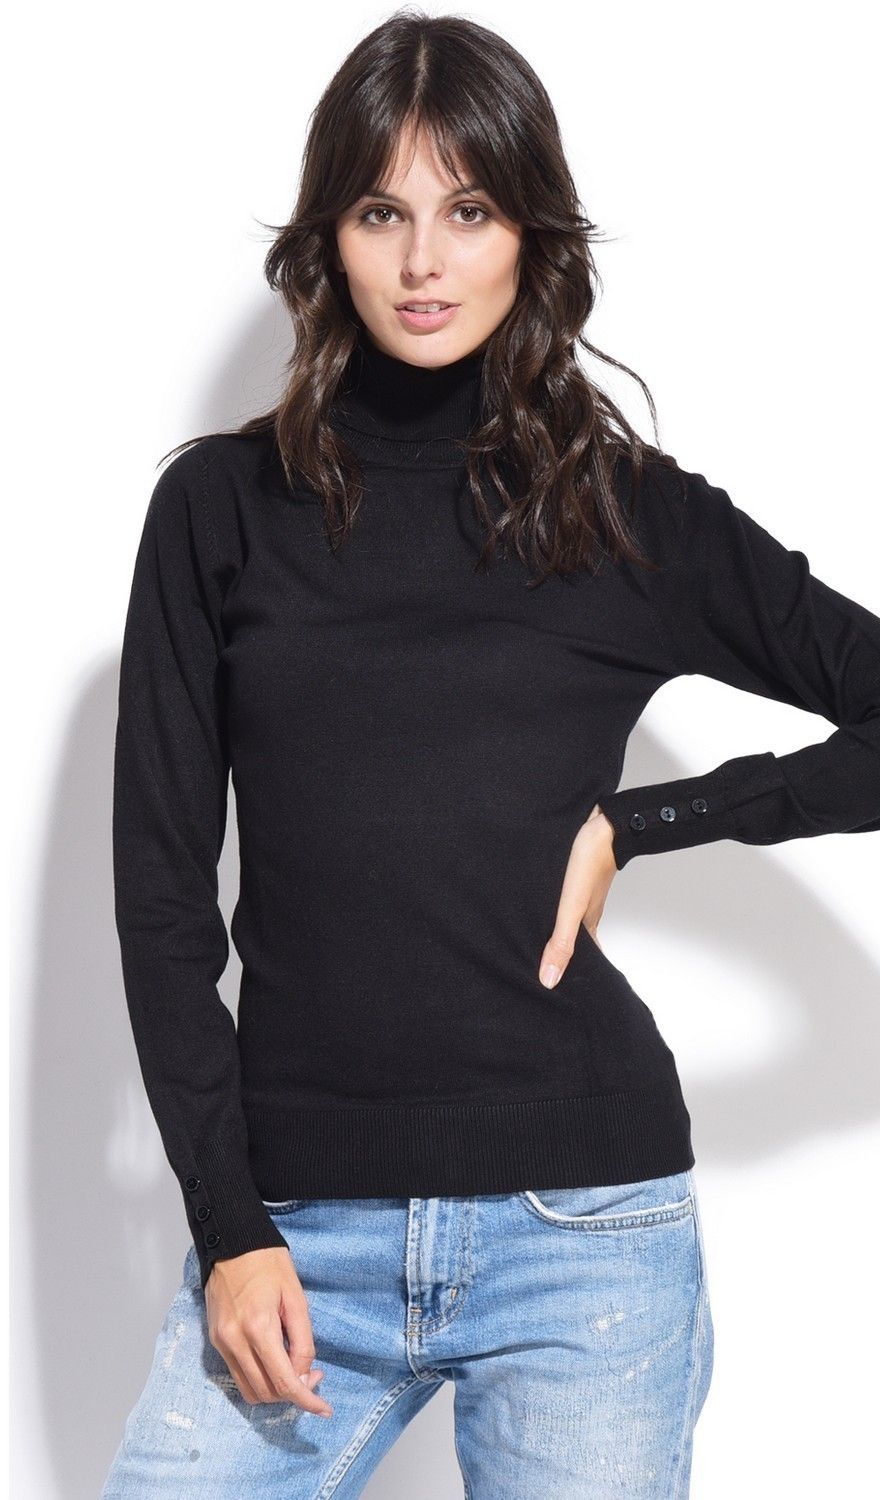 C&JO Roll Neck Sweater with Buttoned Sleeves in Black